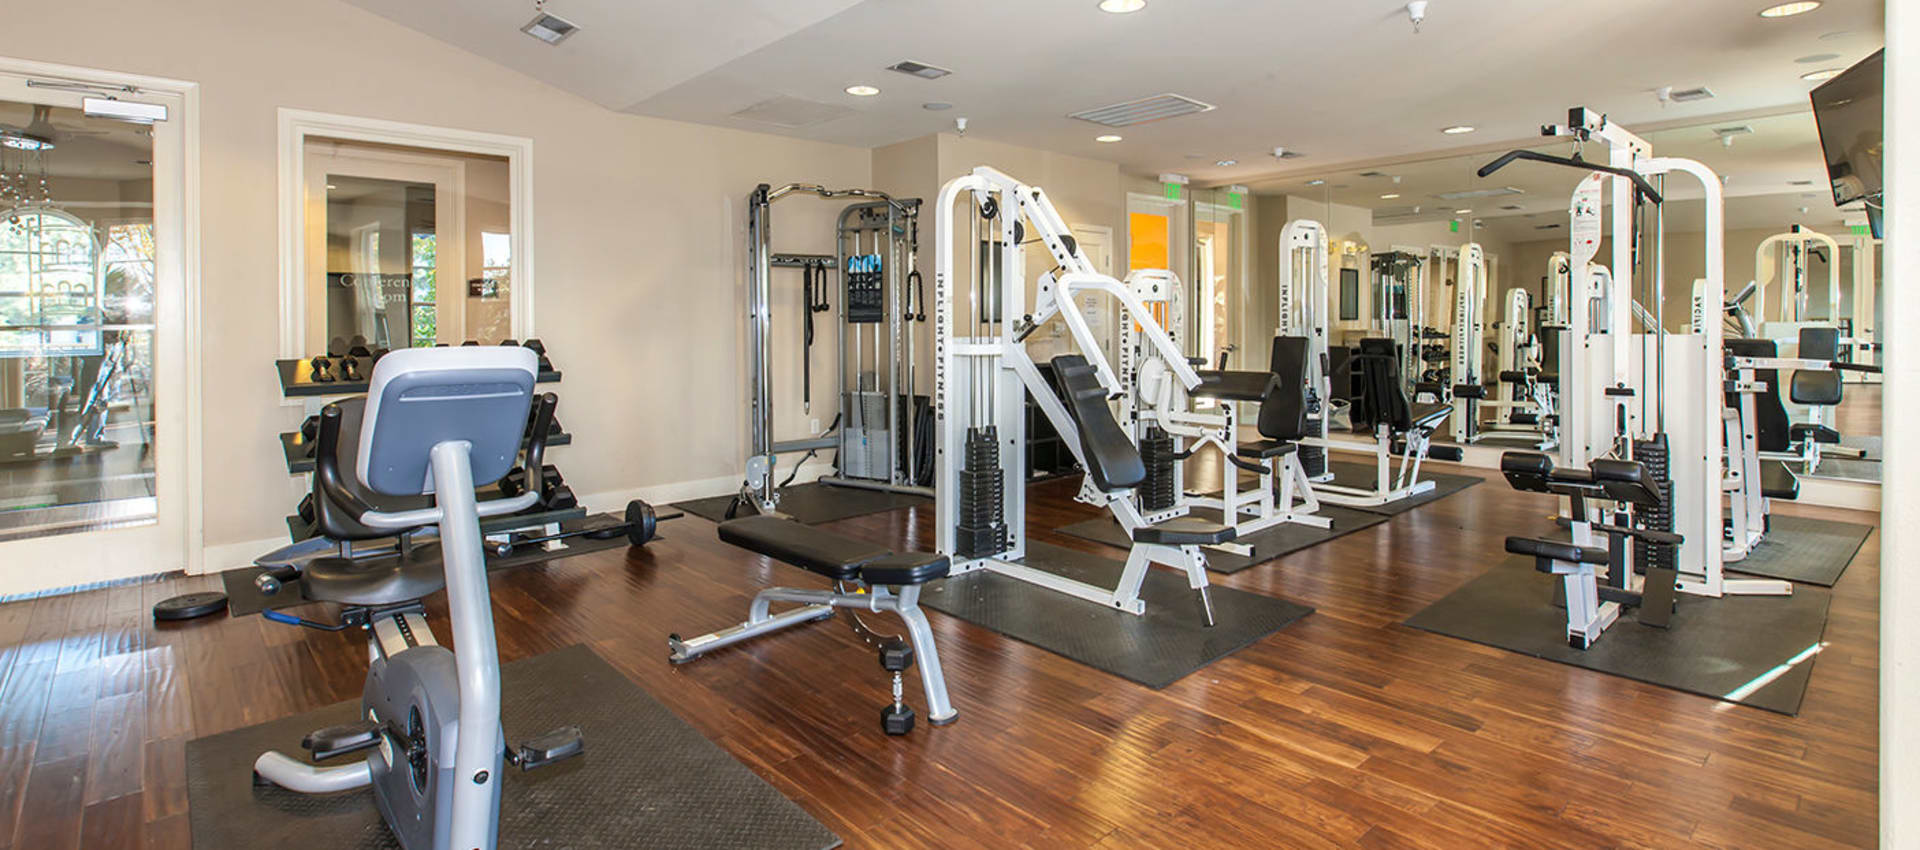 Modern fitness center at Park Central in Concord, California